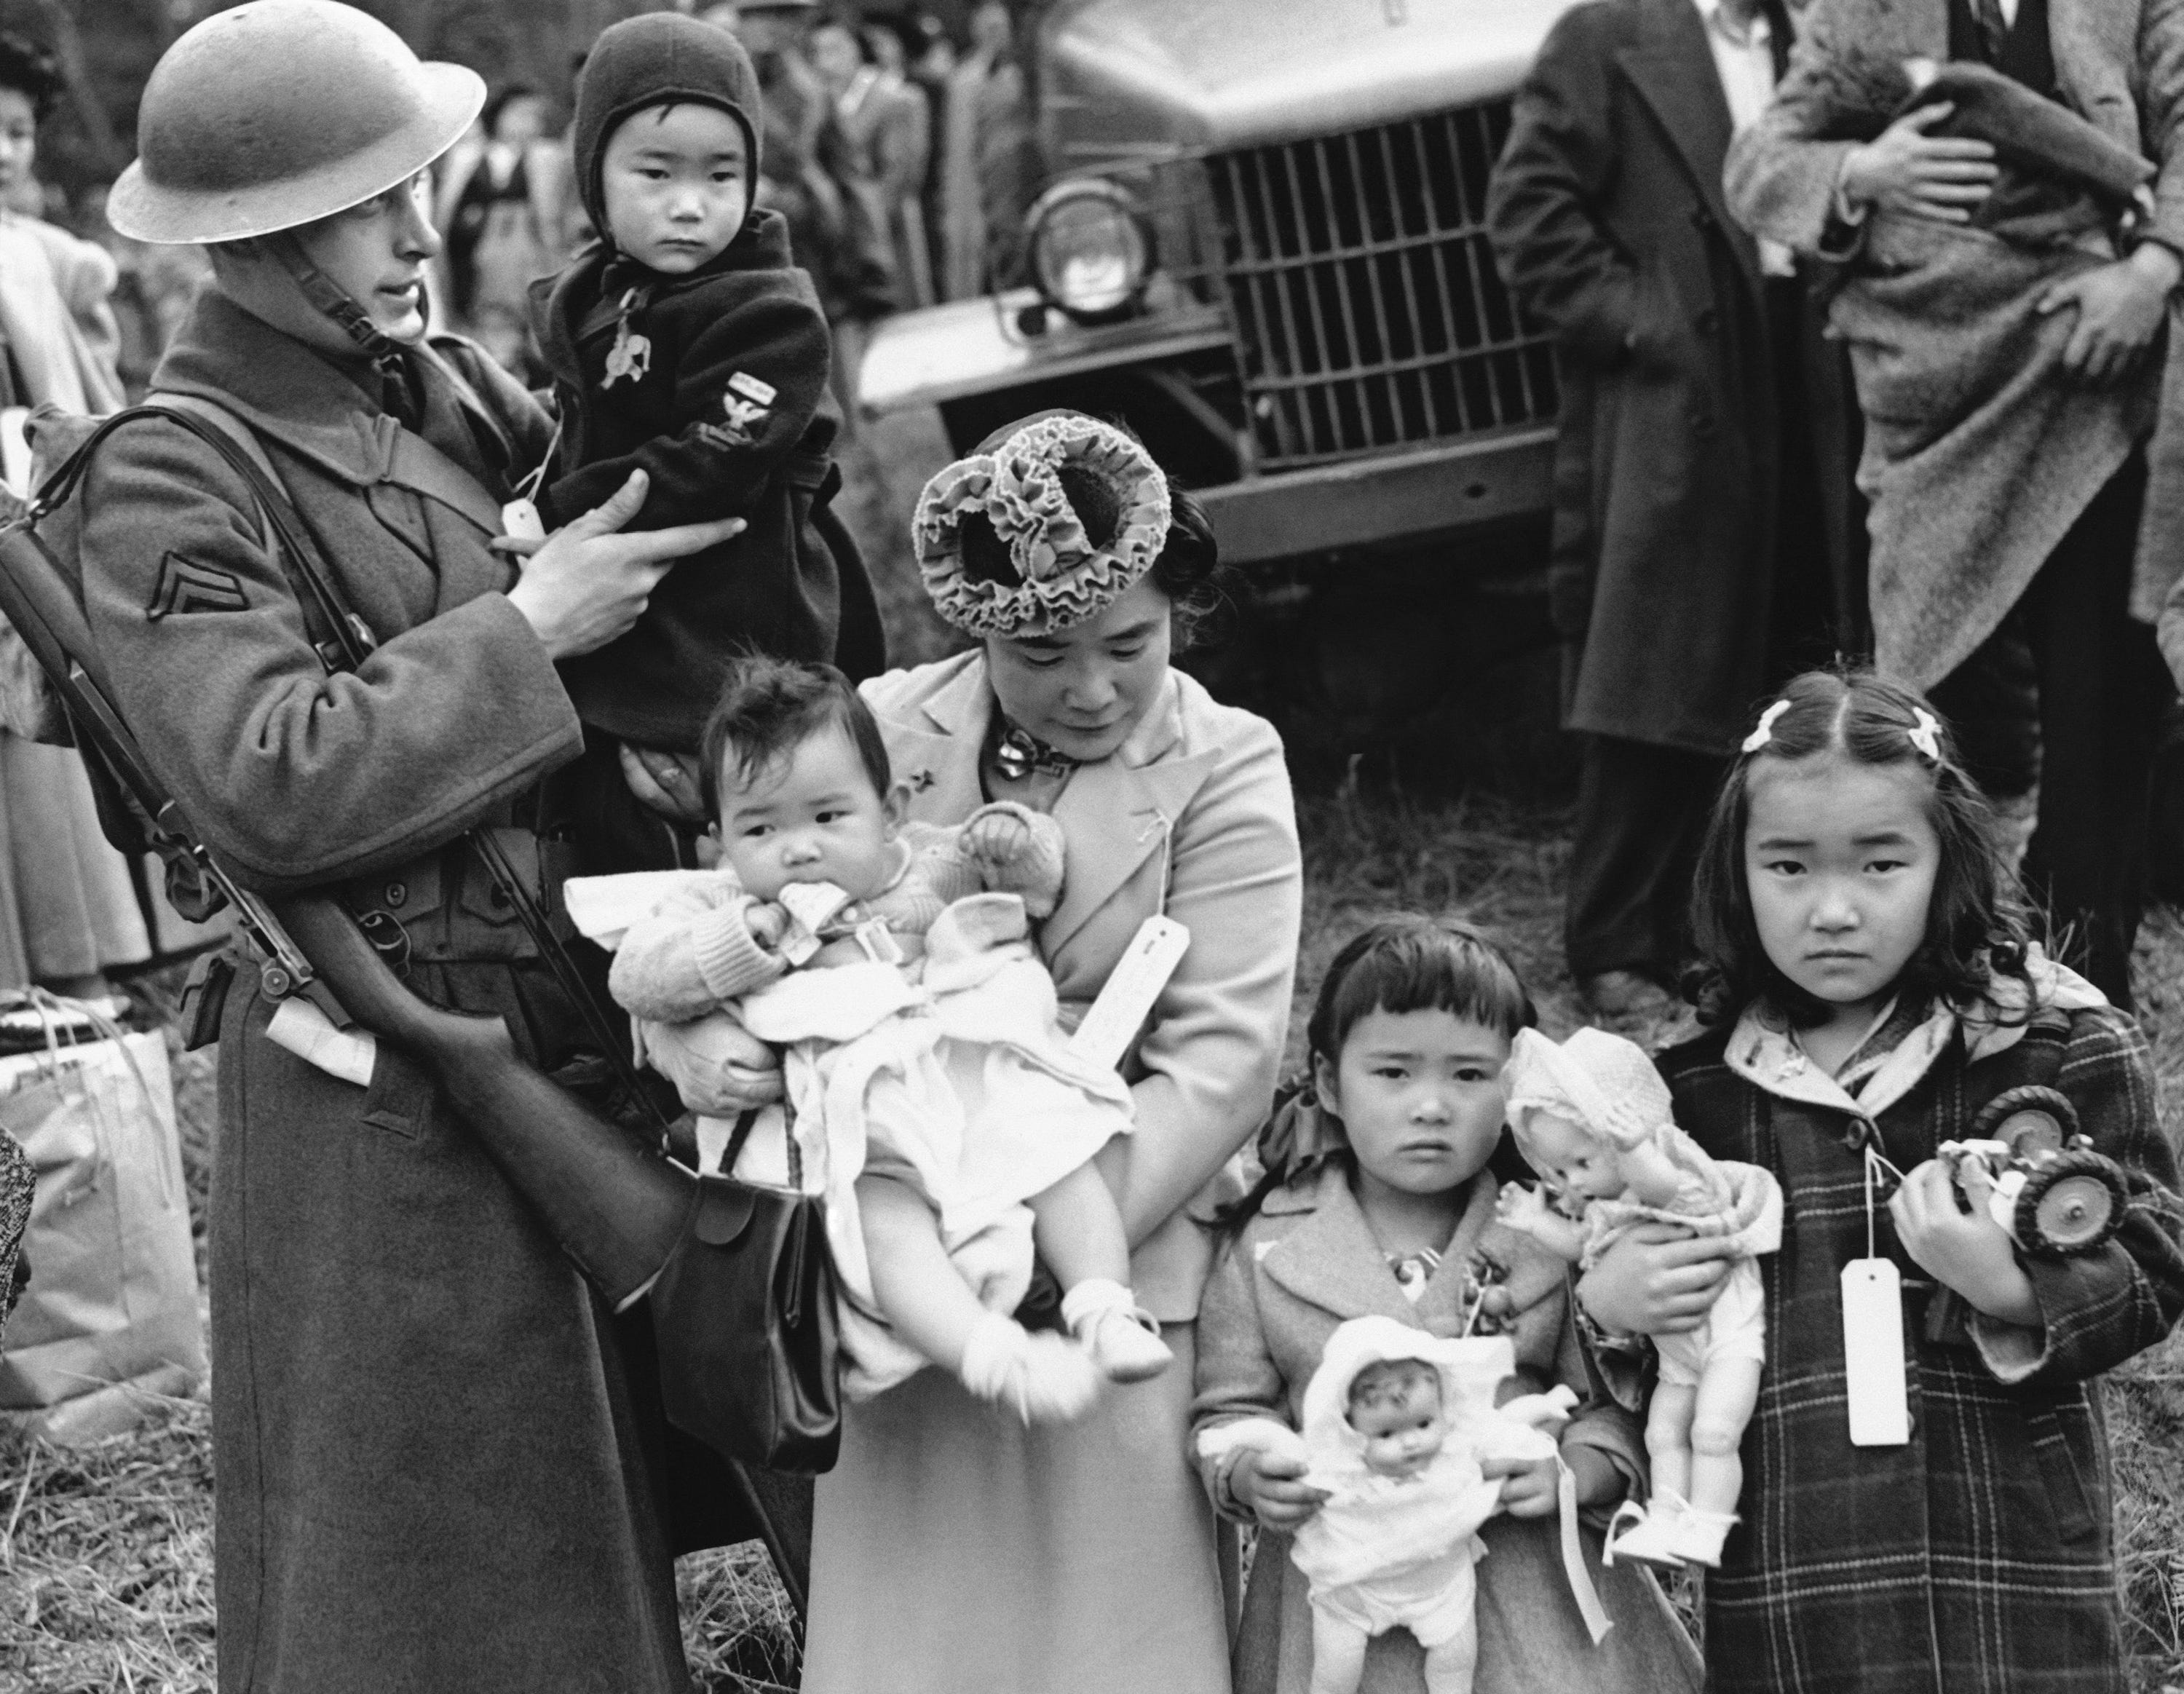 Immigrant children: US has split up families throughout its history | Delaware Online